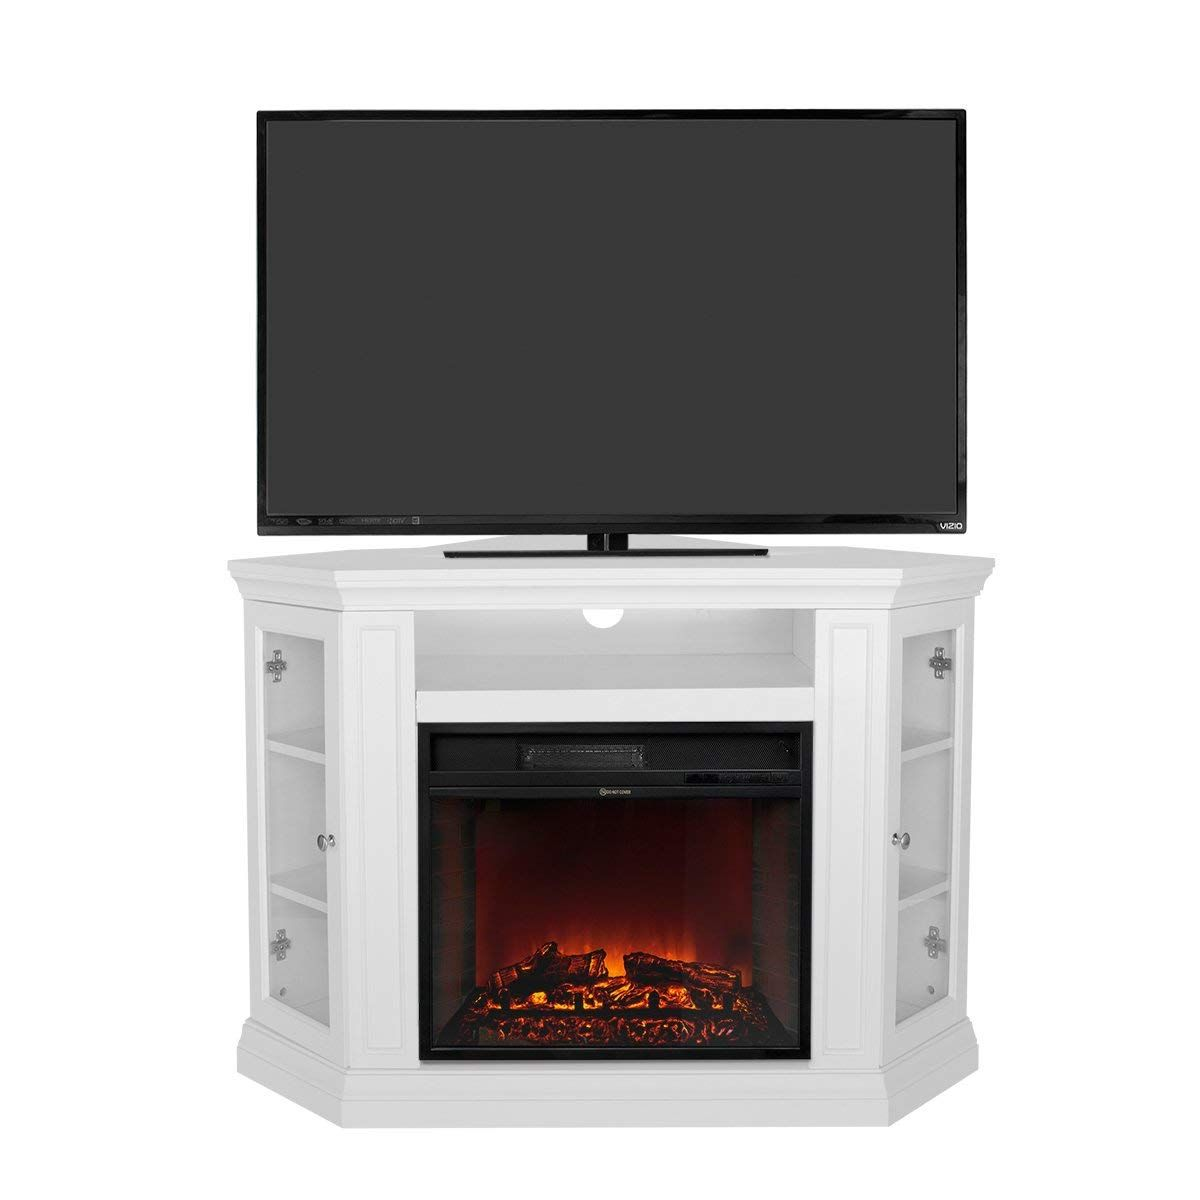 Xtremepowerus Electric Portable Fireplace With Tv Stand Corner